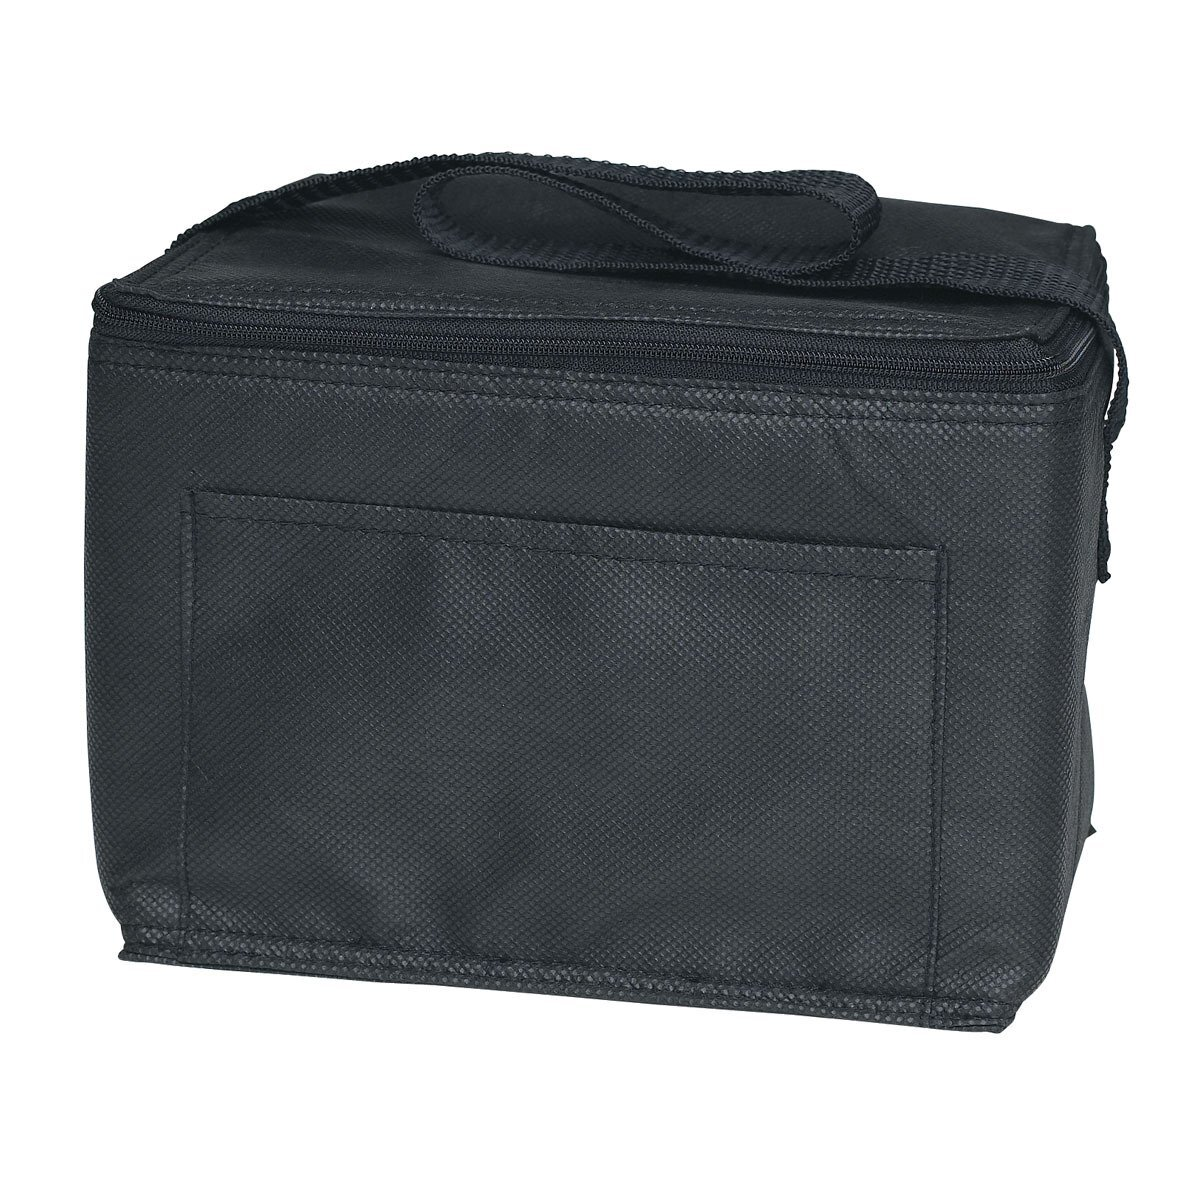 Insulated Non-Woven Six Pack Cooler